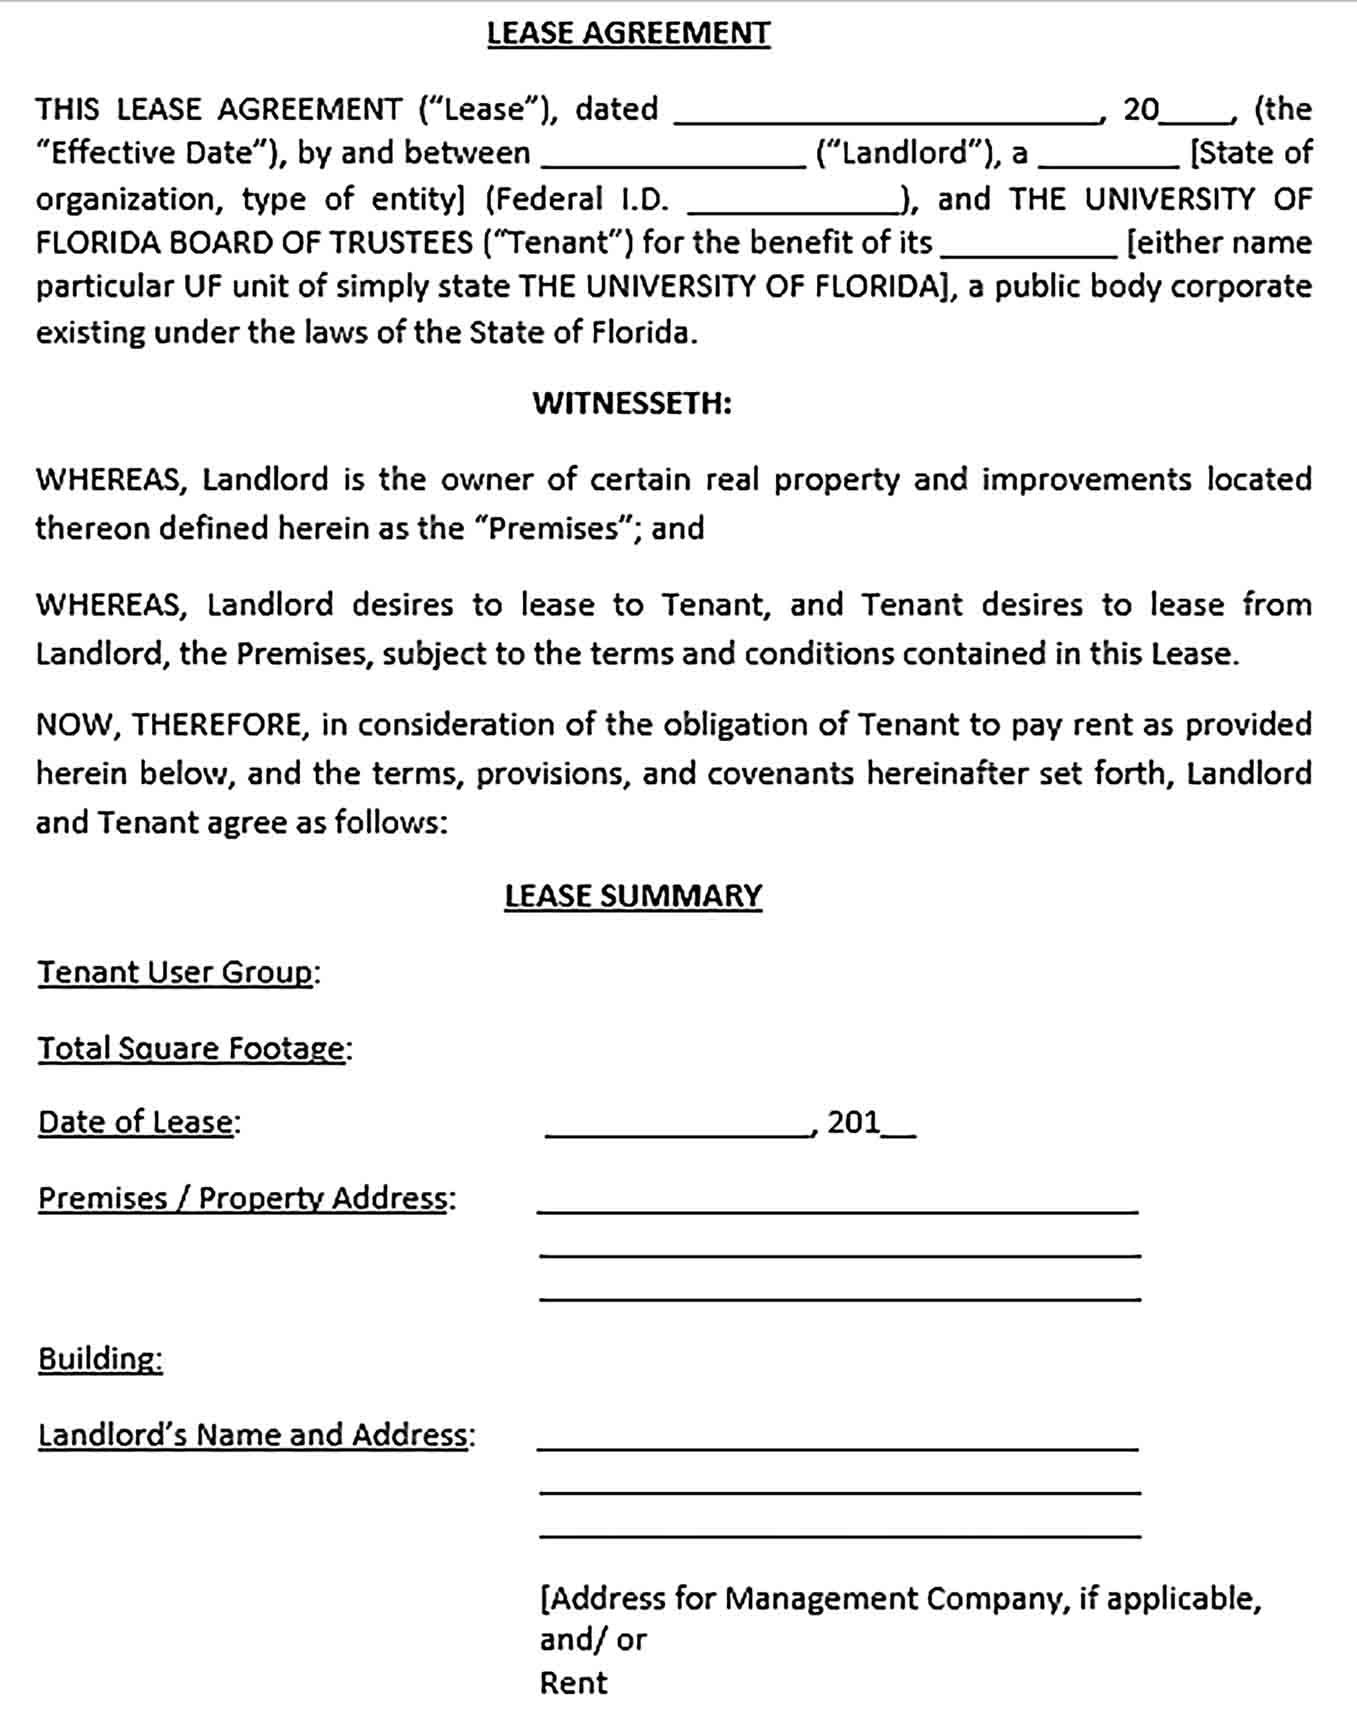 26 Free Commercial Lease Agreement Templates Templatelab Commercial Lease Contract Templ In 2021 Lease Agreement Rental Agreement Templates Commercial Lease Agreement